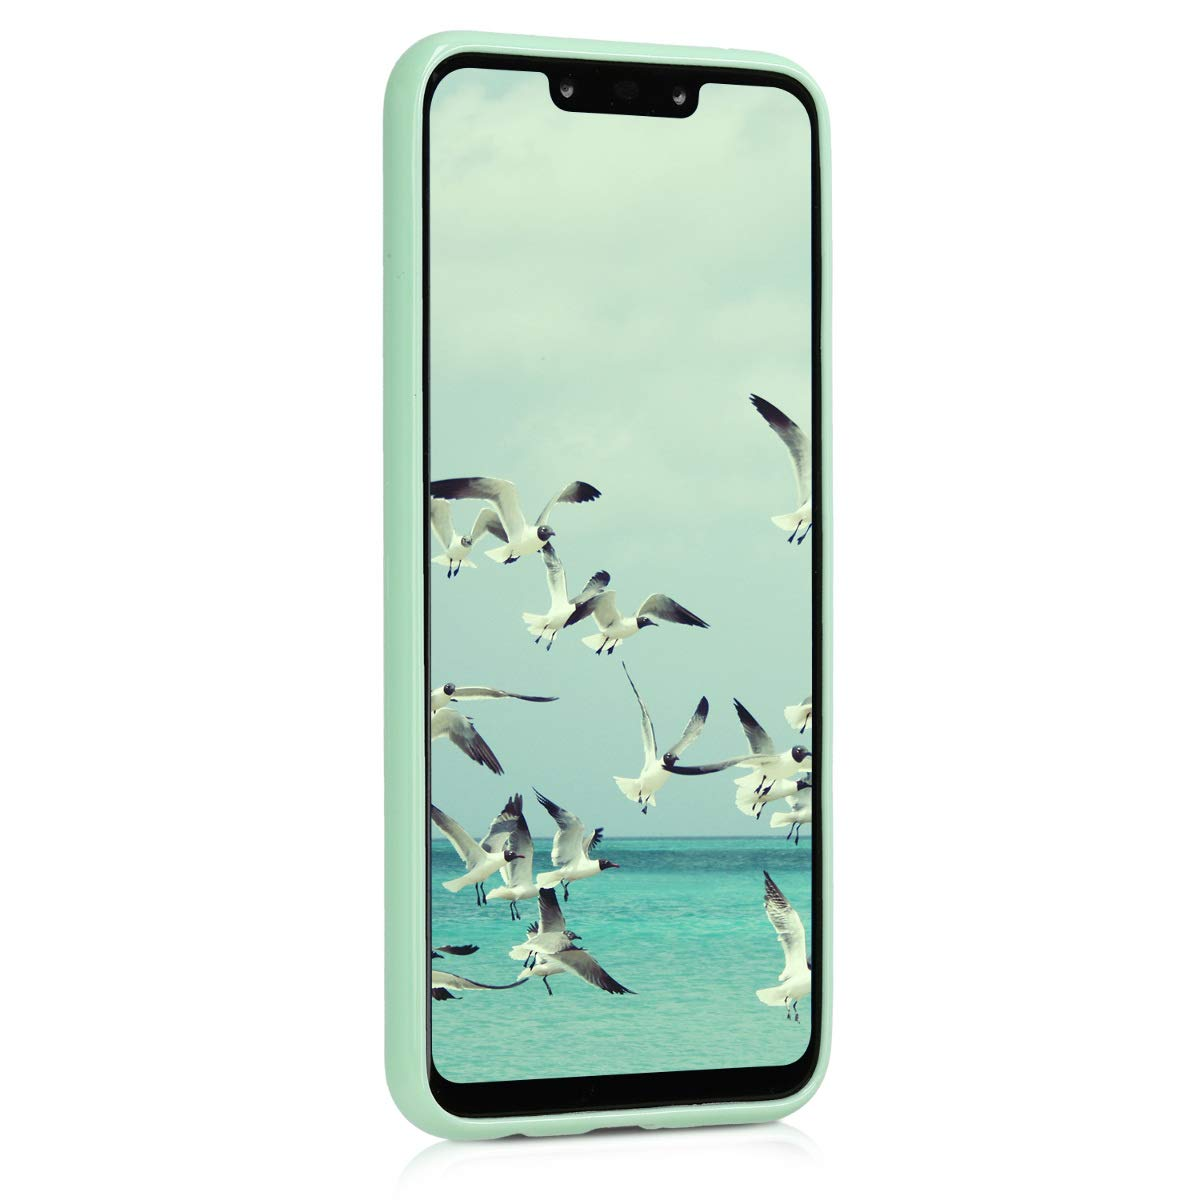 kwmobile TPU Silicone Case for Huawei Mate 20 Lite - Soft Flexible Shock Absorbent Protective Phone Cover - Mint Matte